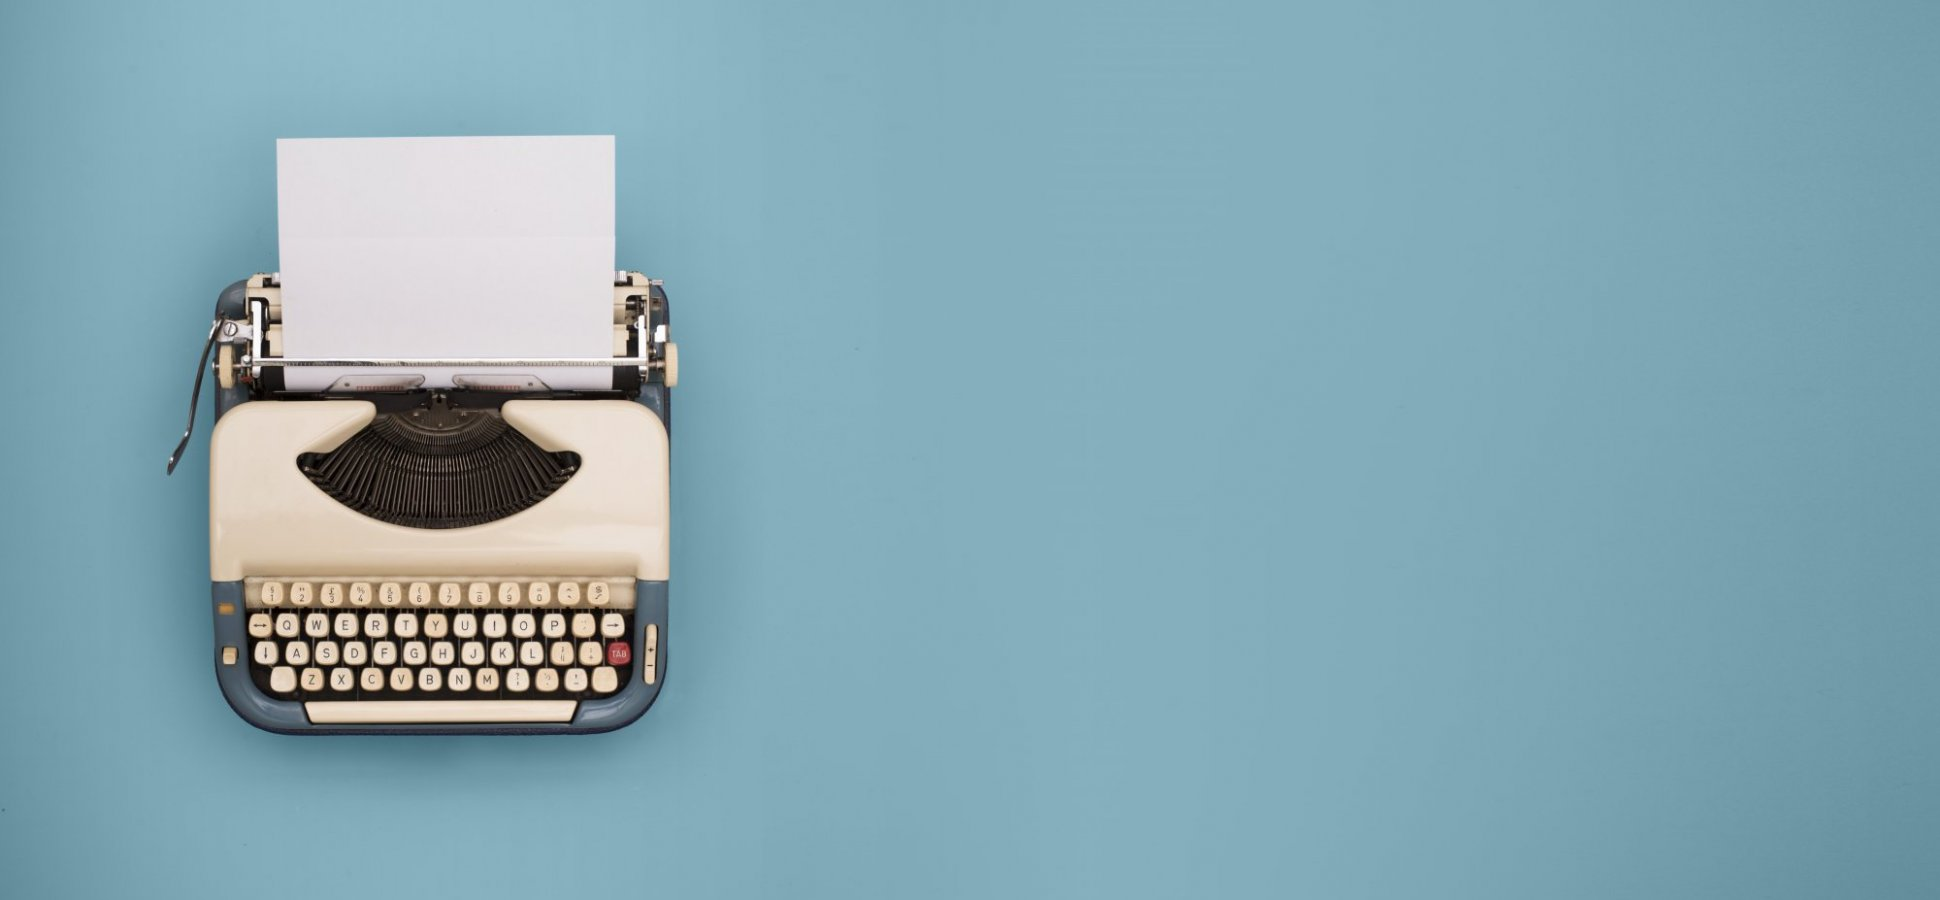 37 Topic Ideas for Your Blog. Because Content Marketing Is a Strategy You Don't Want to Ignore